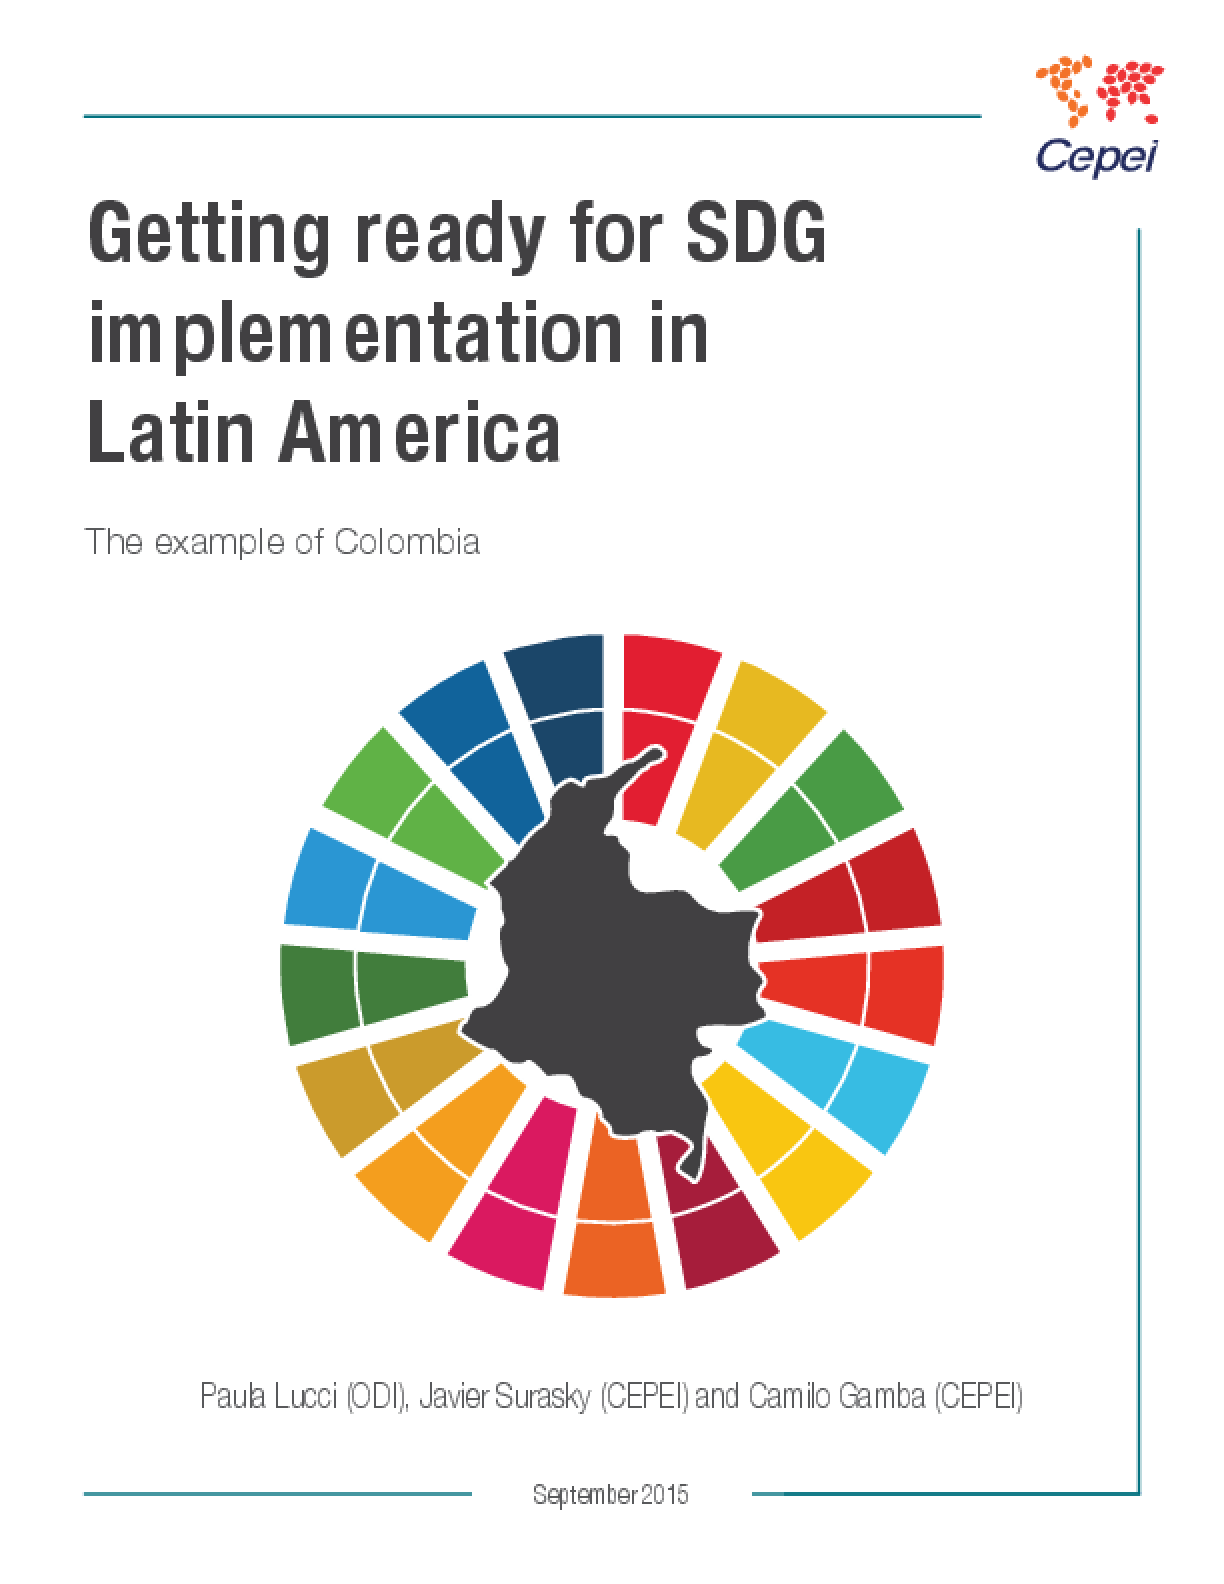 Getting Ready for SDG Implementation in Latin America: The Example of Colombia